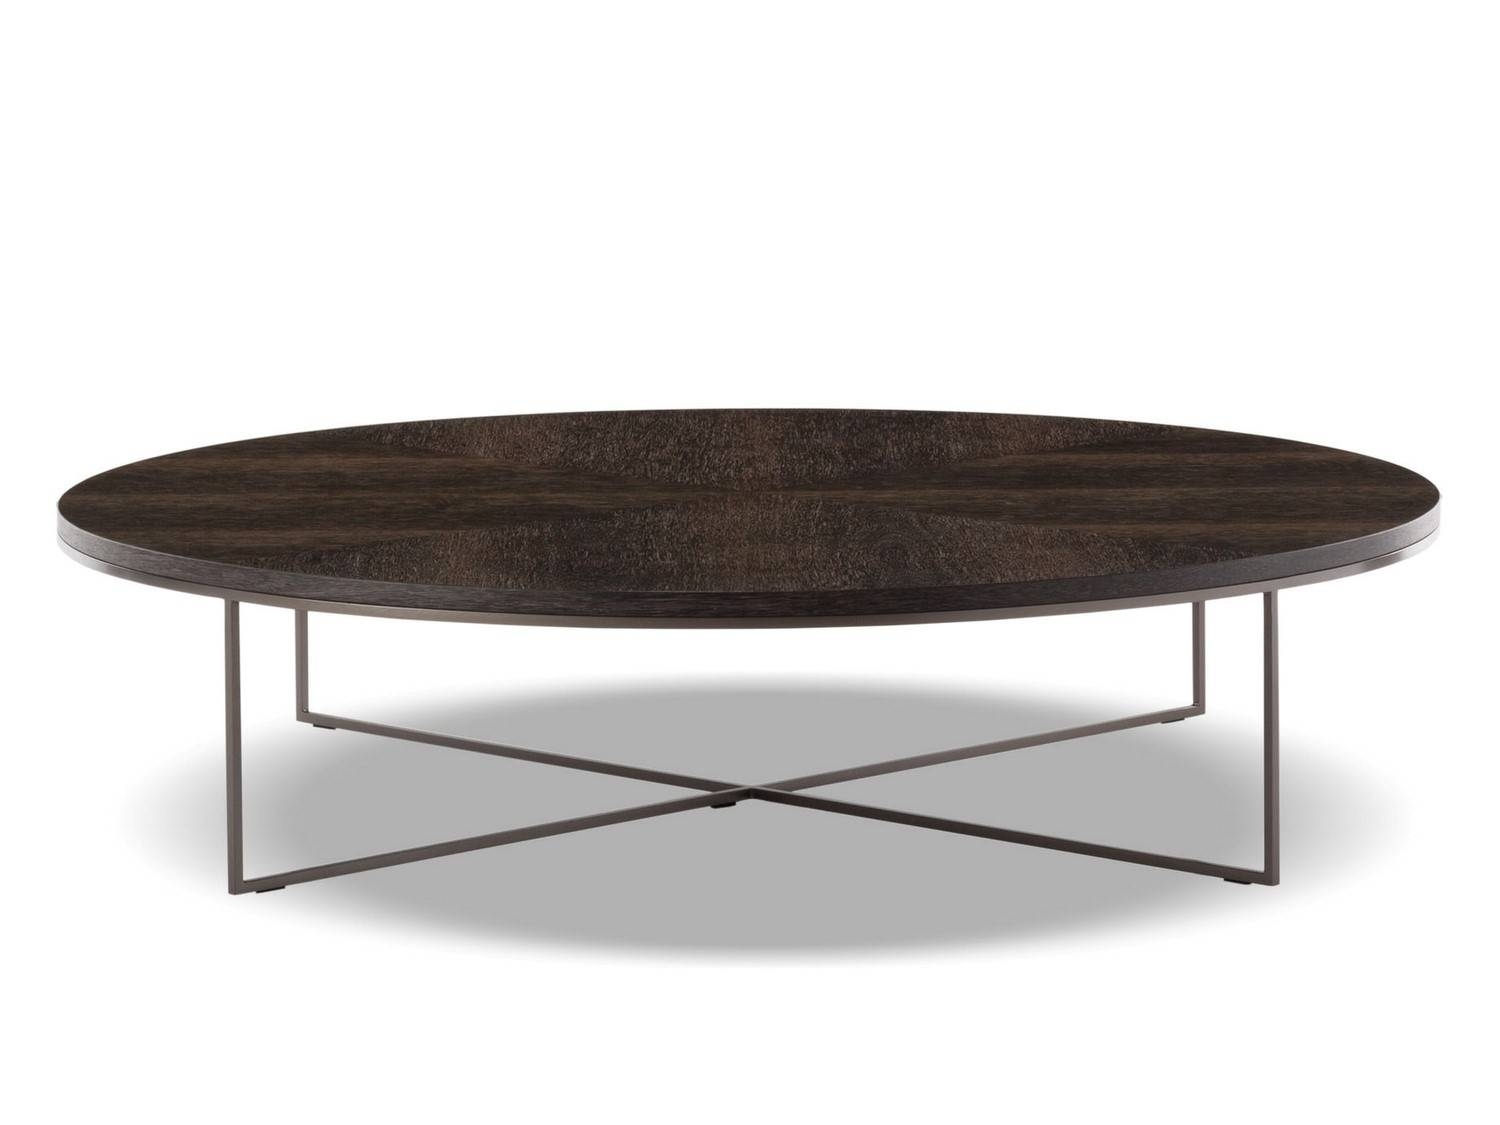 Furniture. Bronze Coffee Table Design Ideas: Black Oval inside Black Oval Coffee Table (Image 17 of 30)